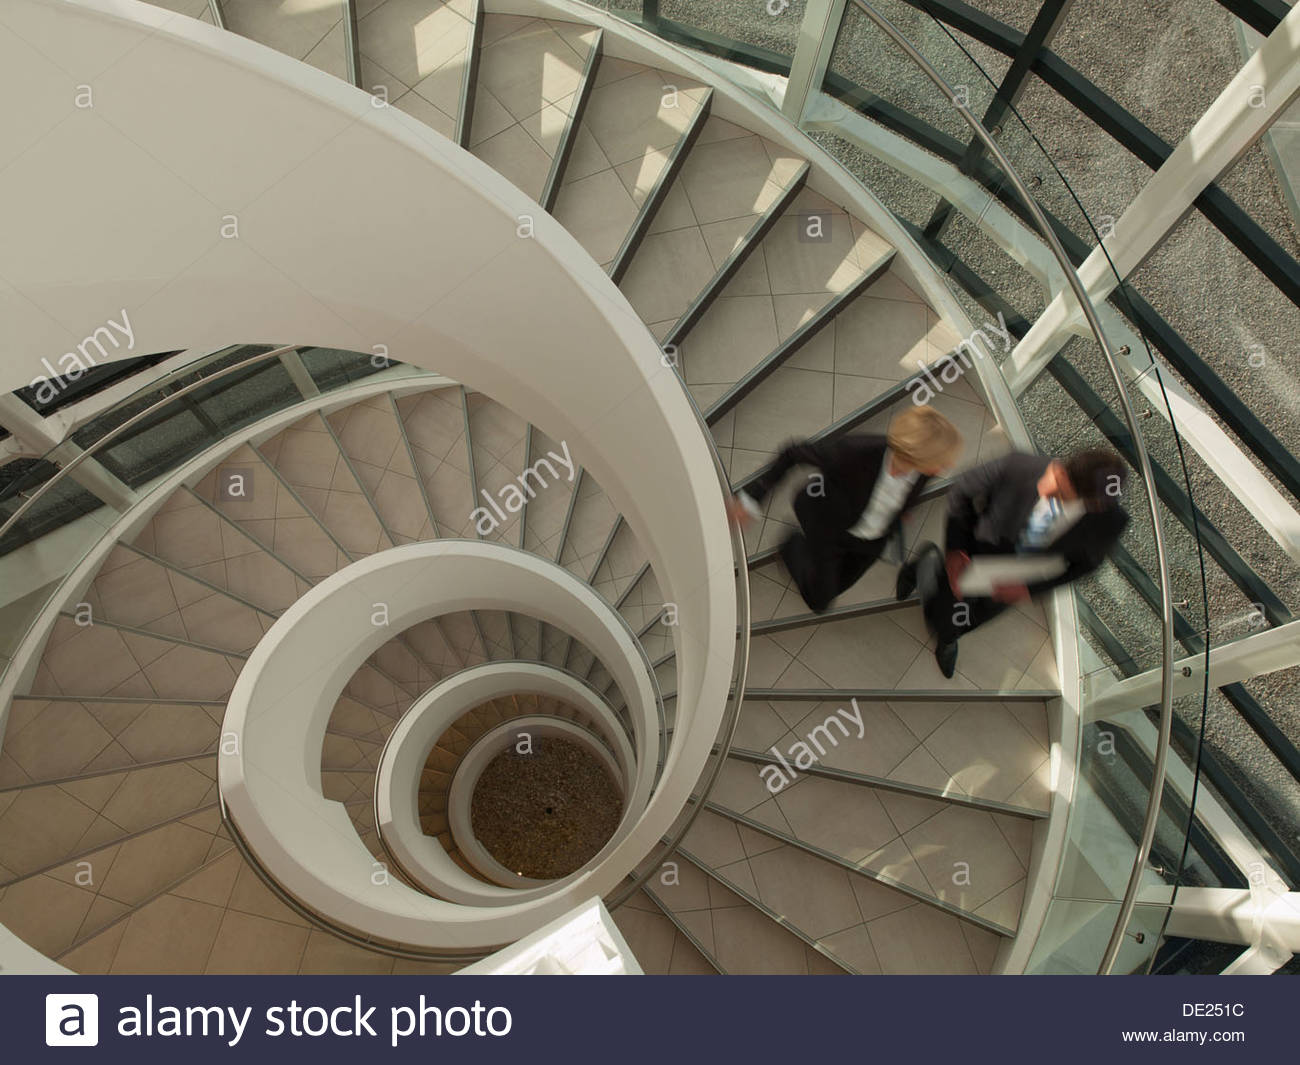 Business people descending circular staircase - Stock Image